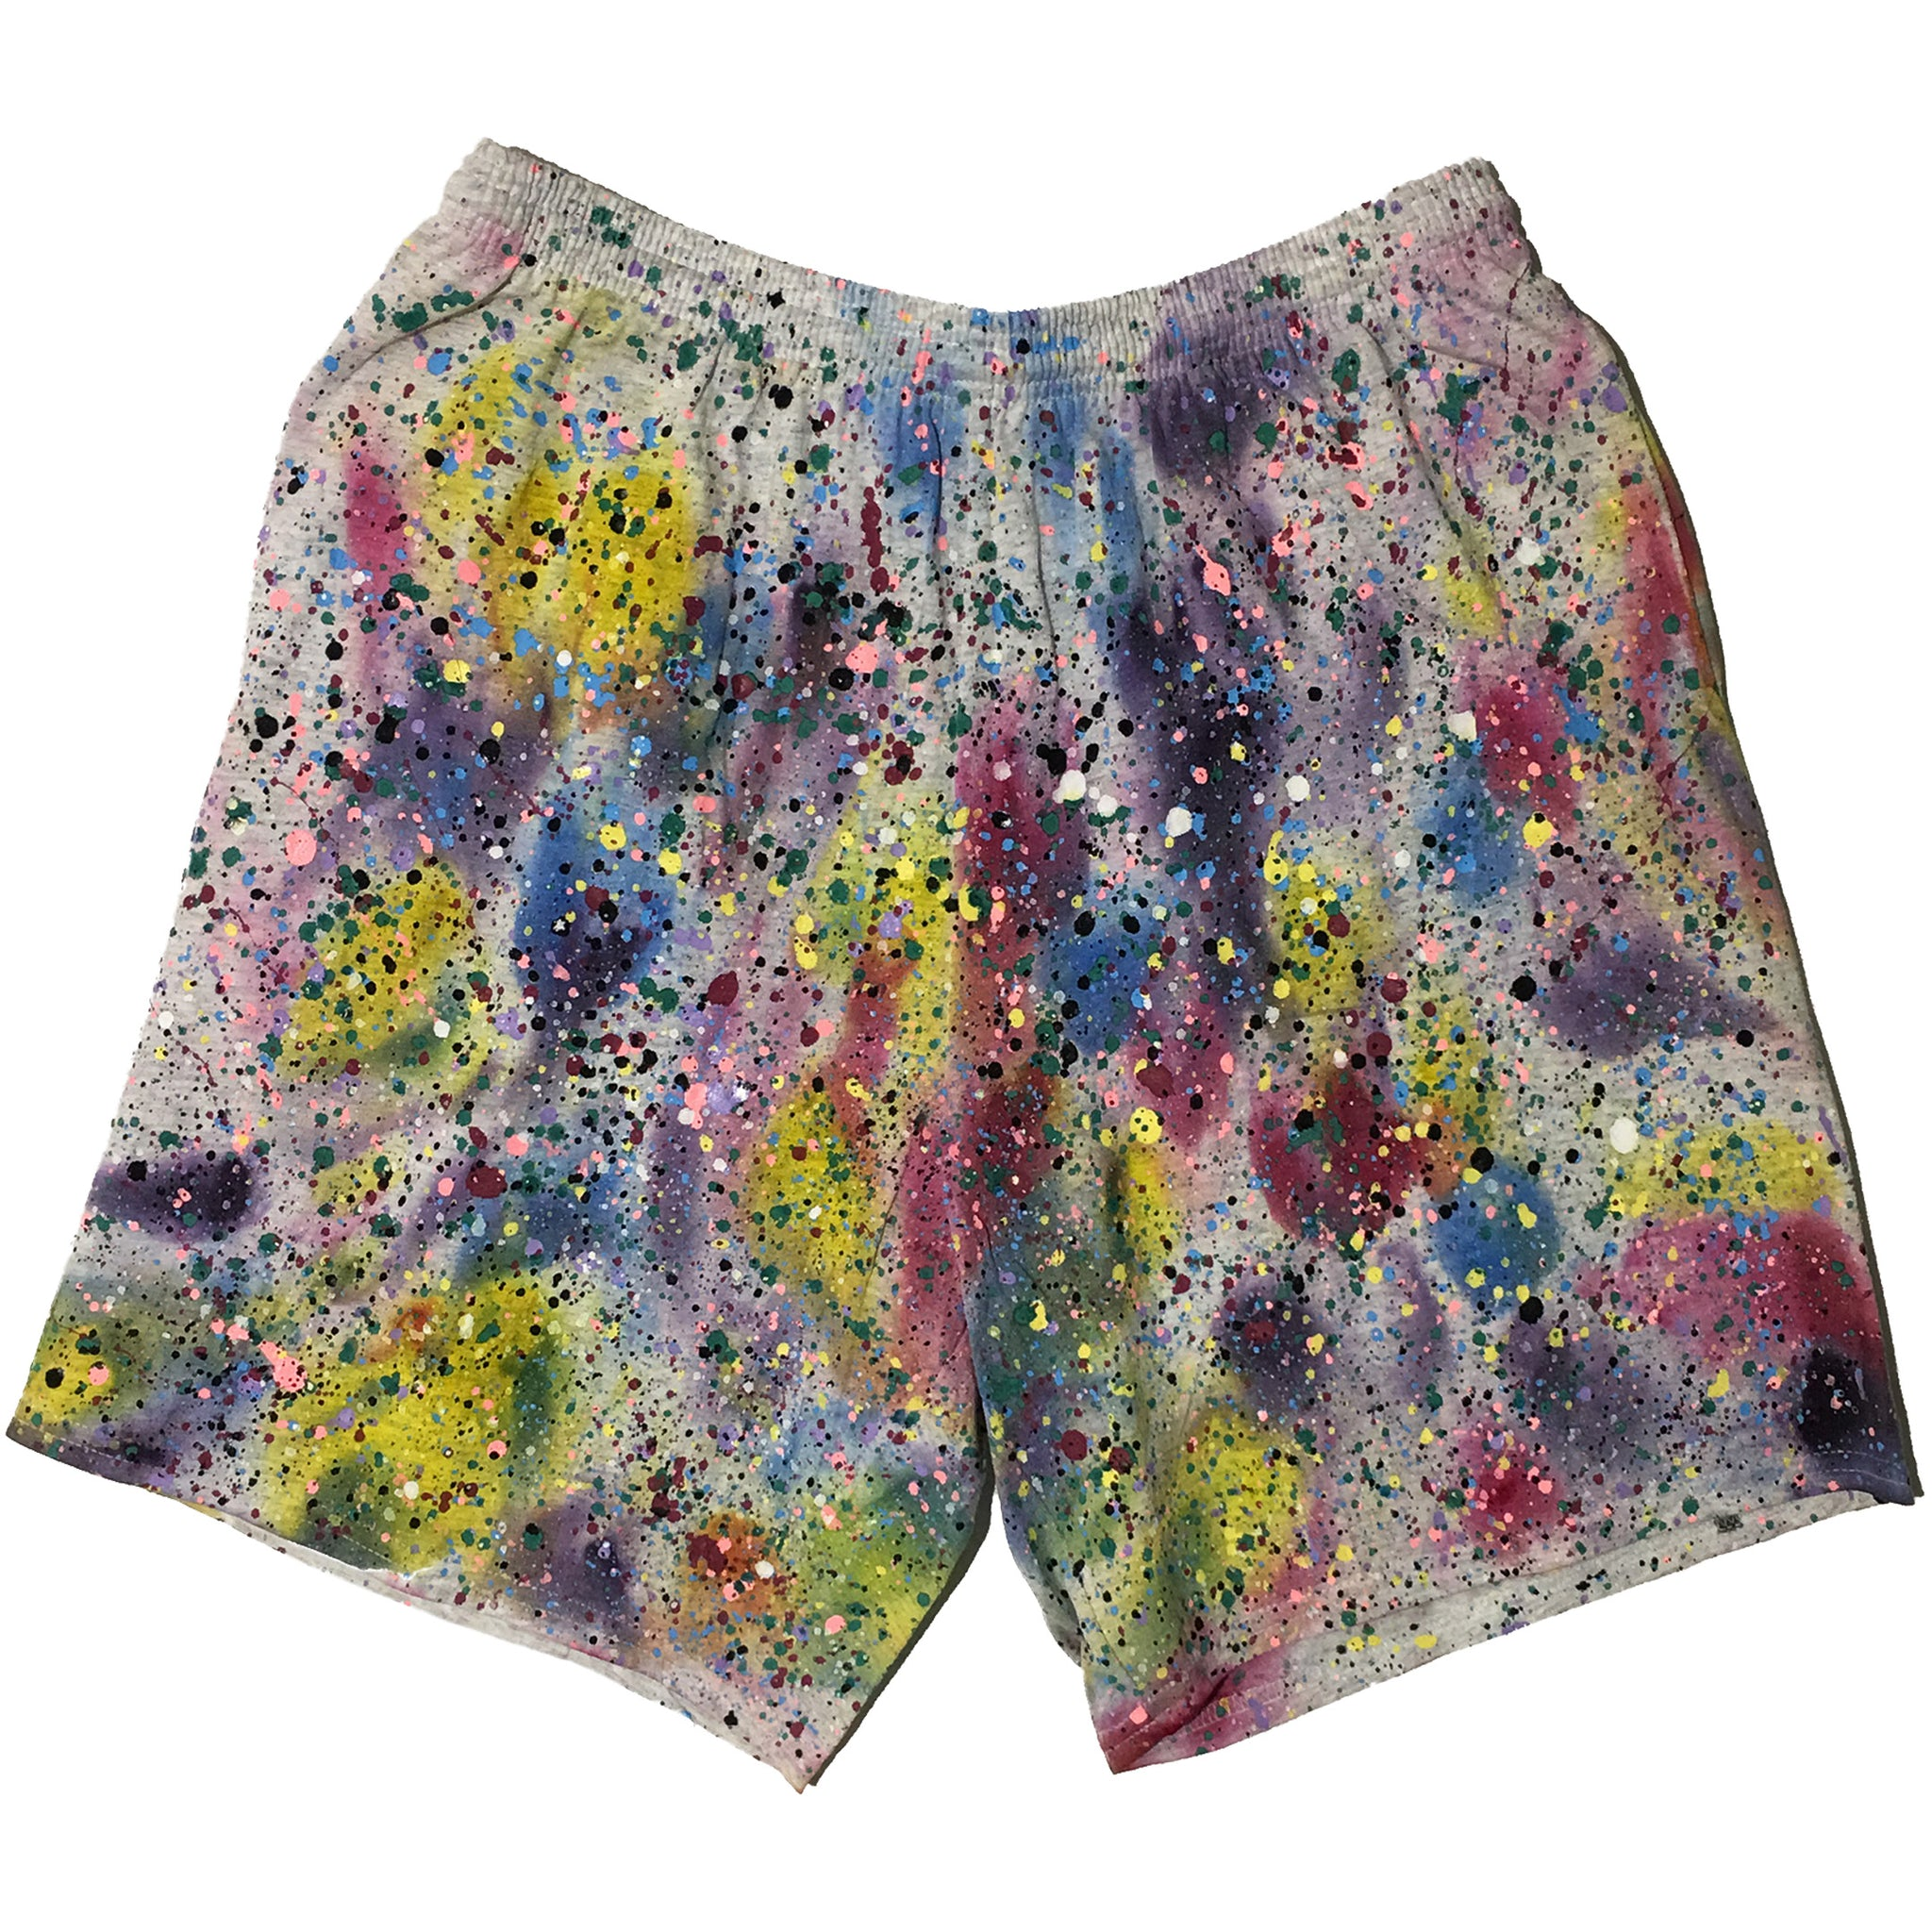 """Hand Splatter Shorts"" by Blim"